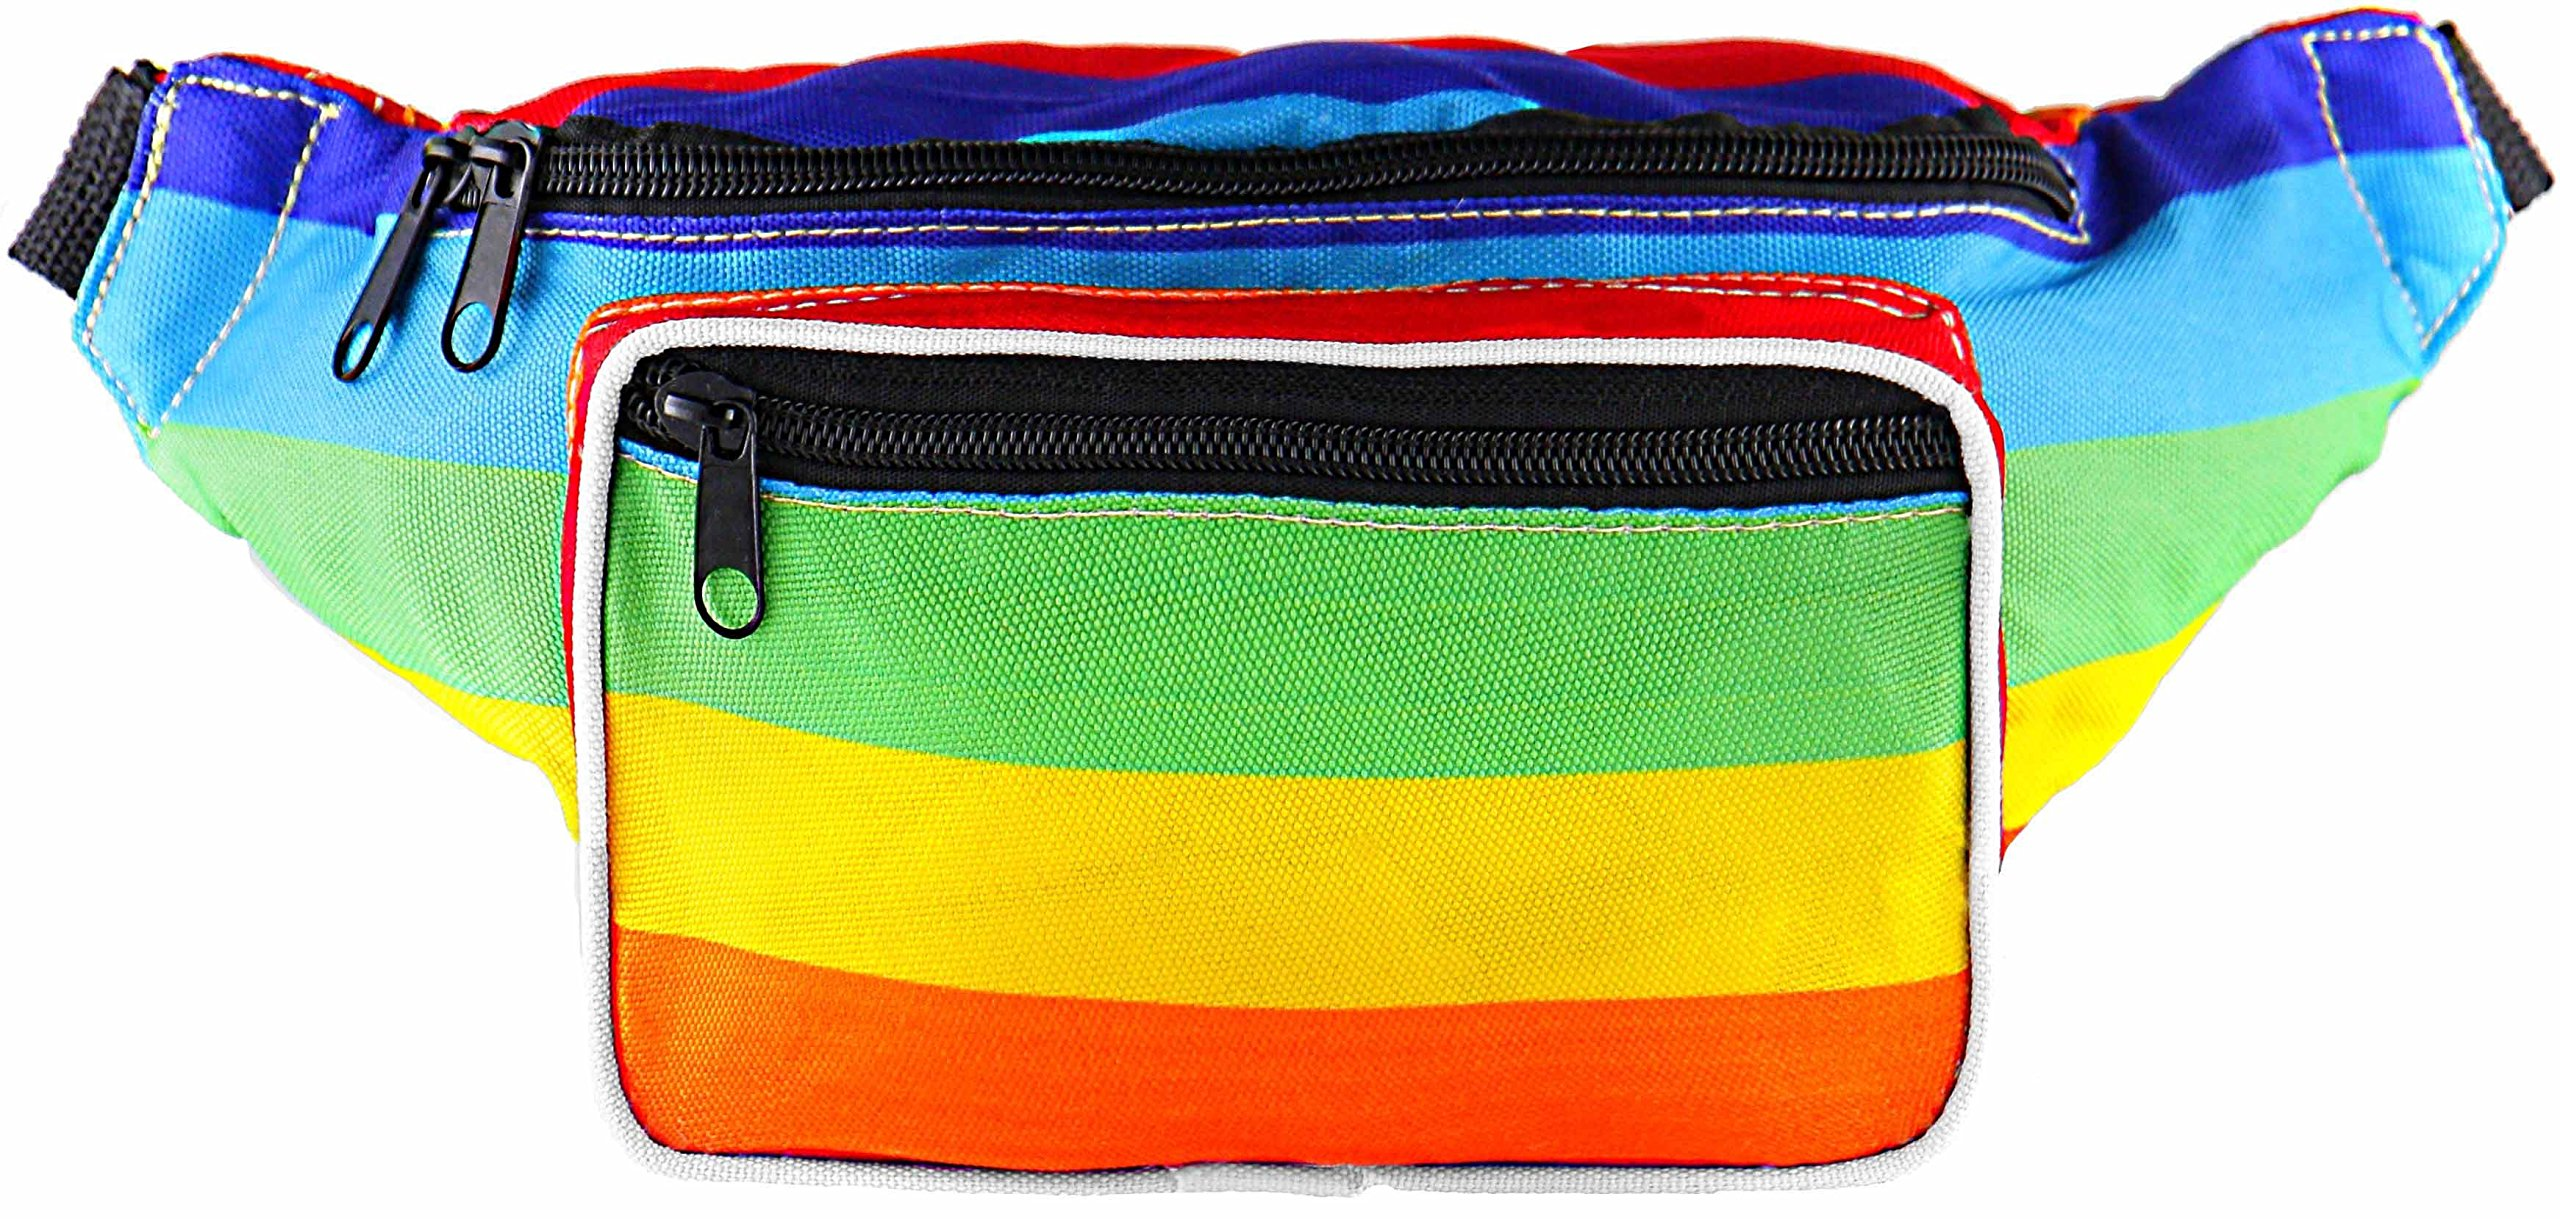 SoJourner Rainbow Fanny Pack - Festival Packs for men, women | Cute Pride Waist Bag Fashion Belt Bags